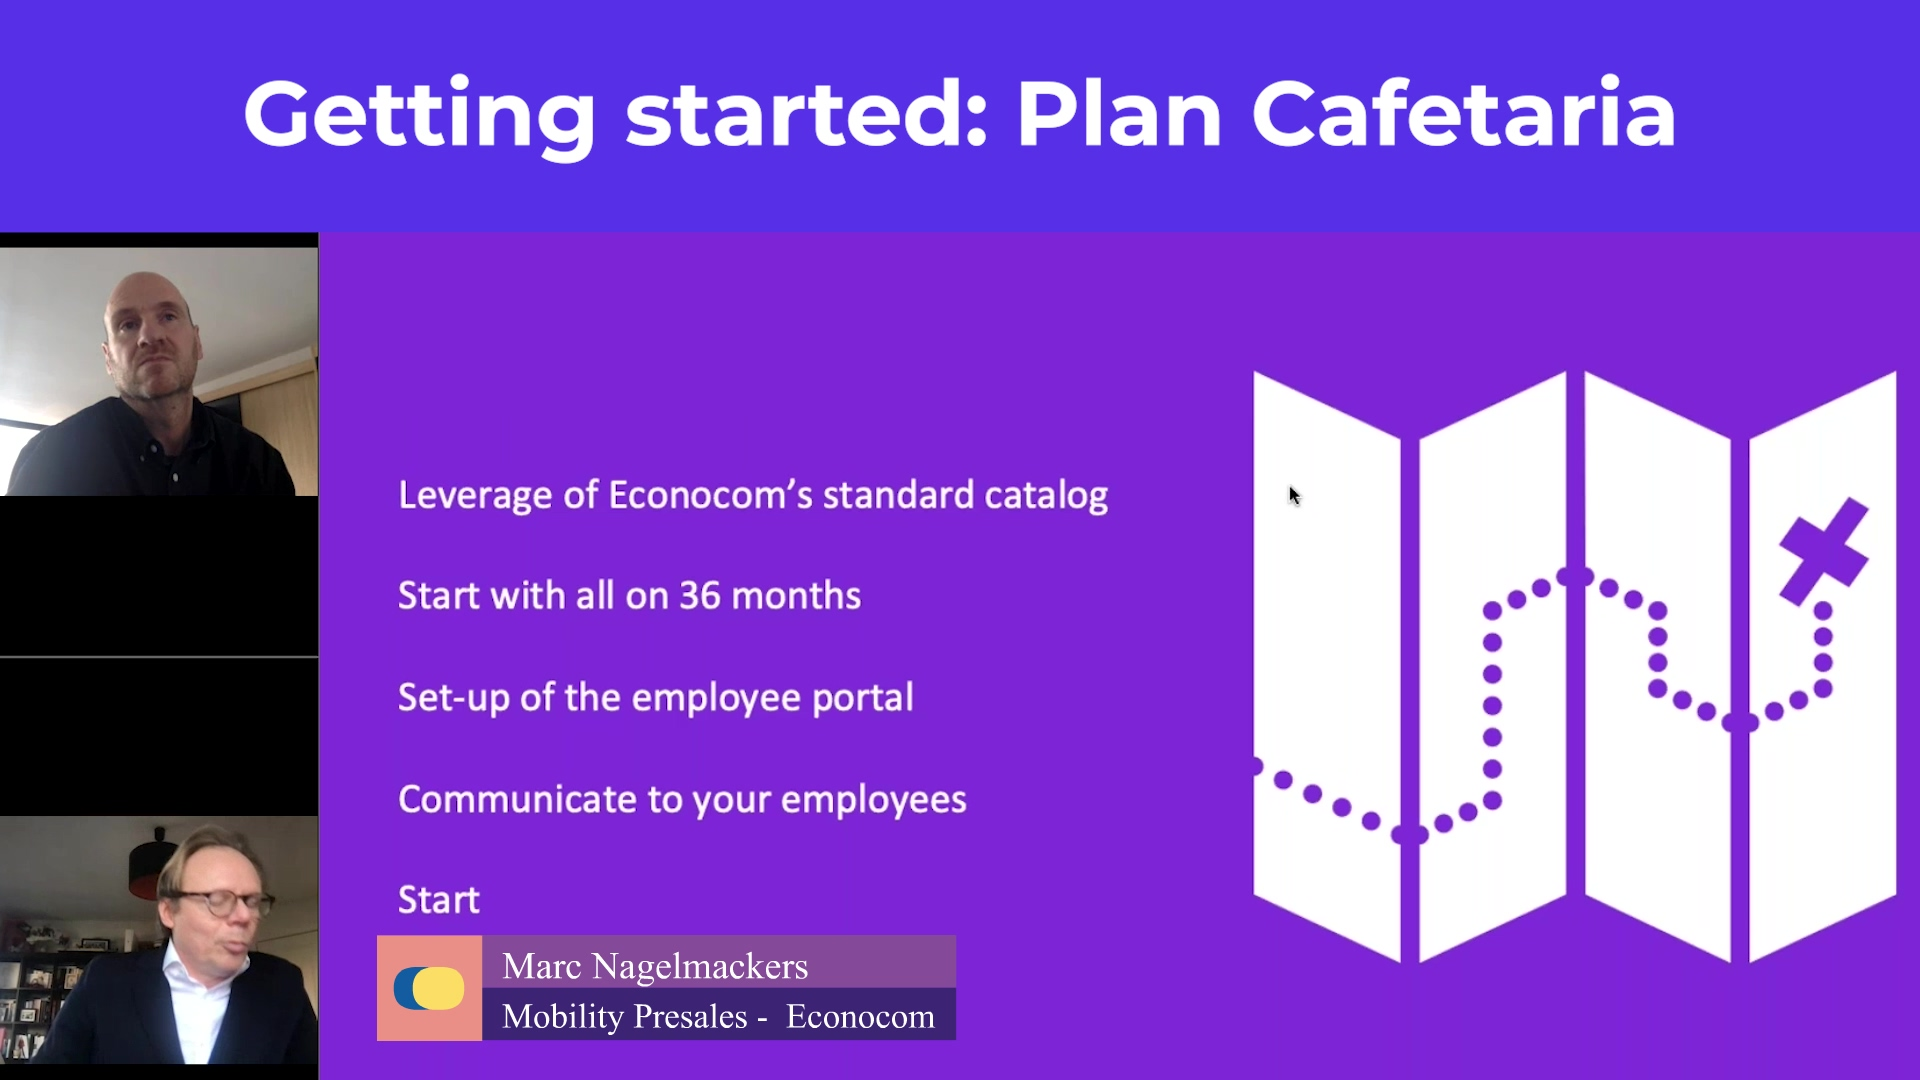 webinar plan cafet - getting started with plan cafetaria